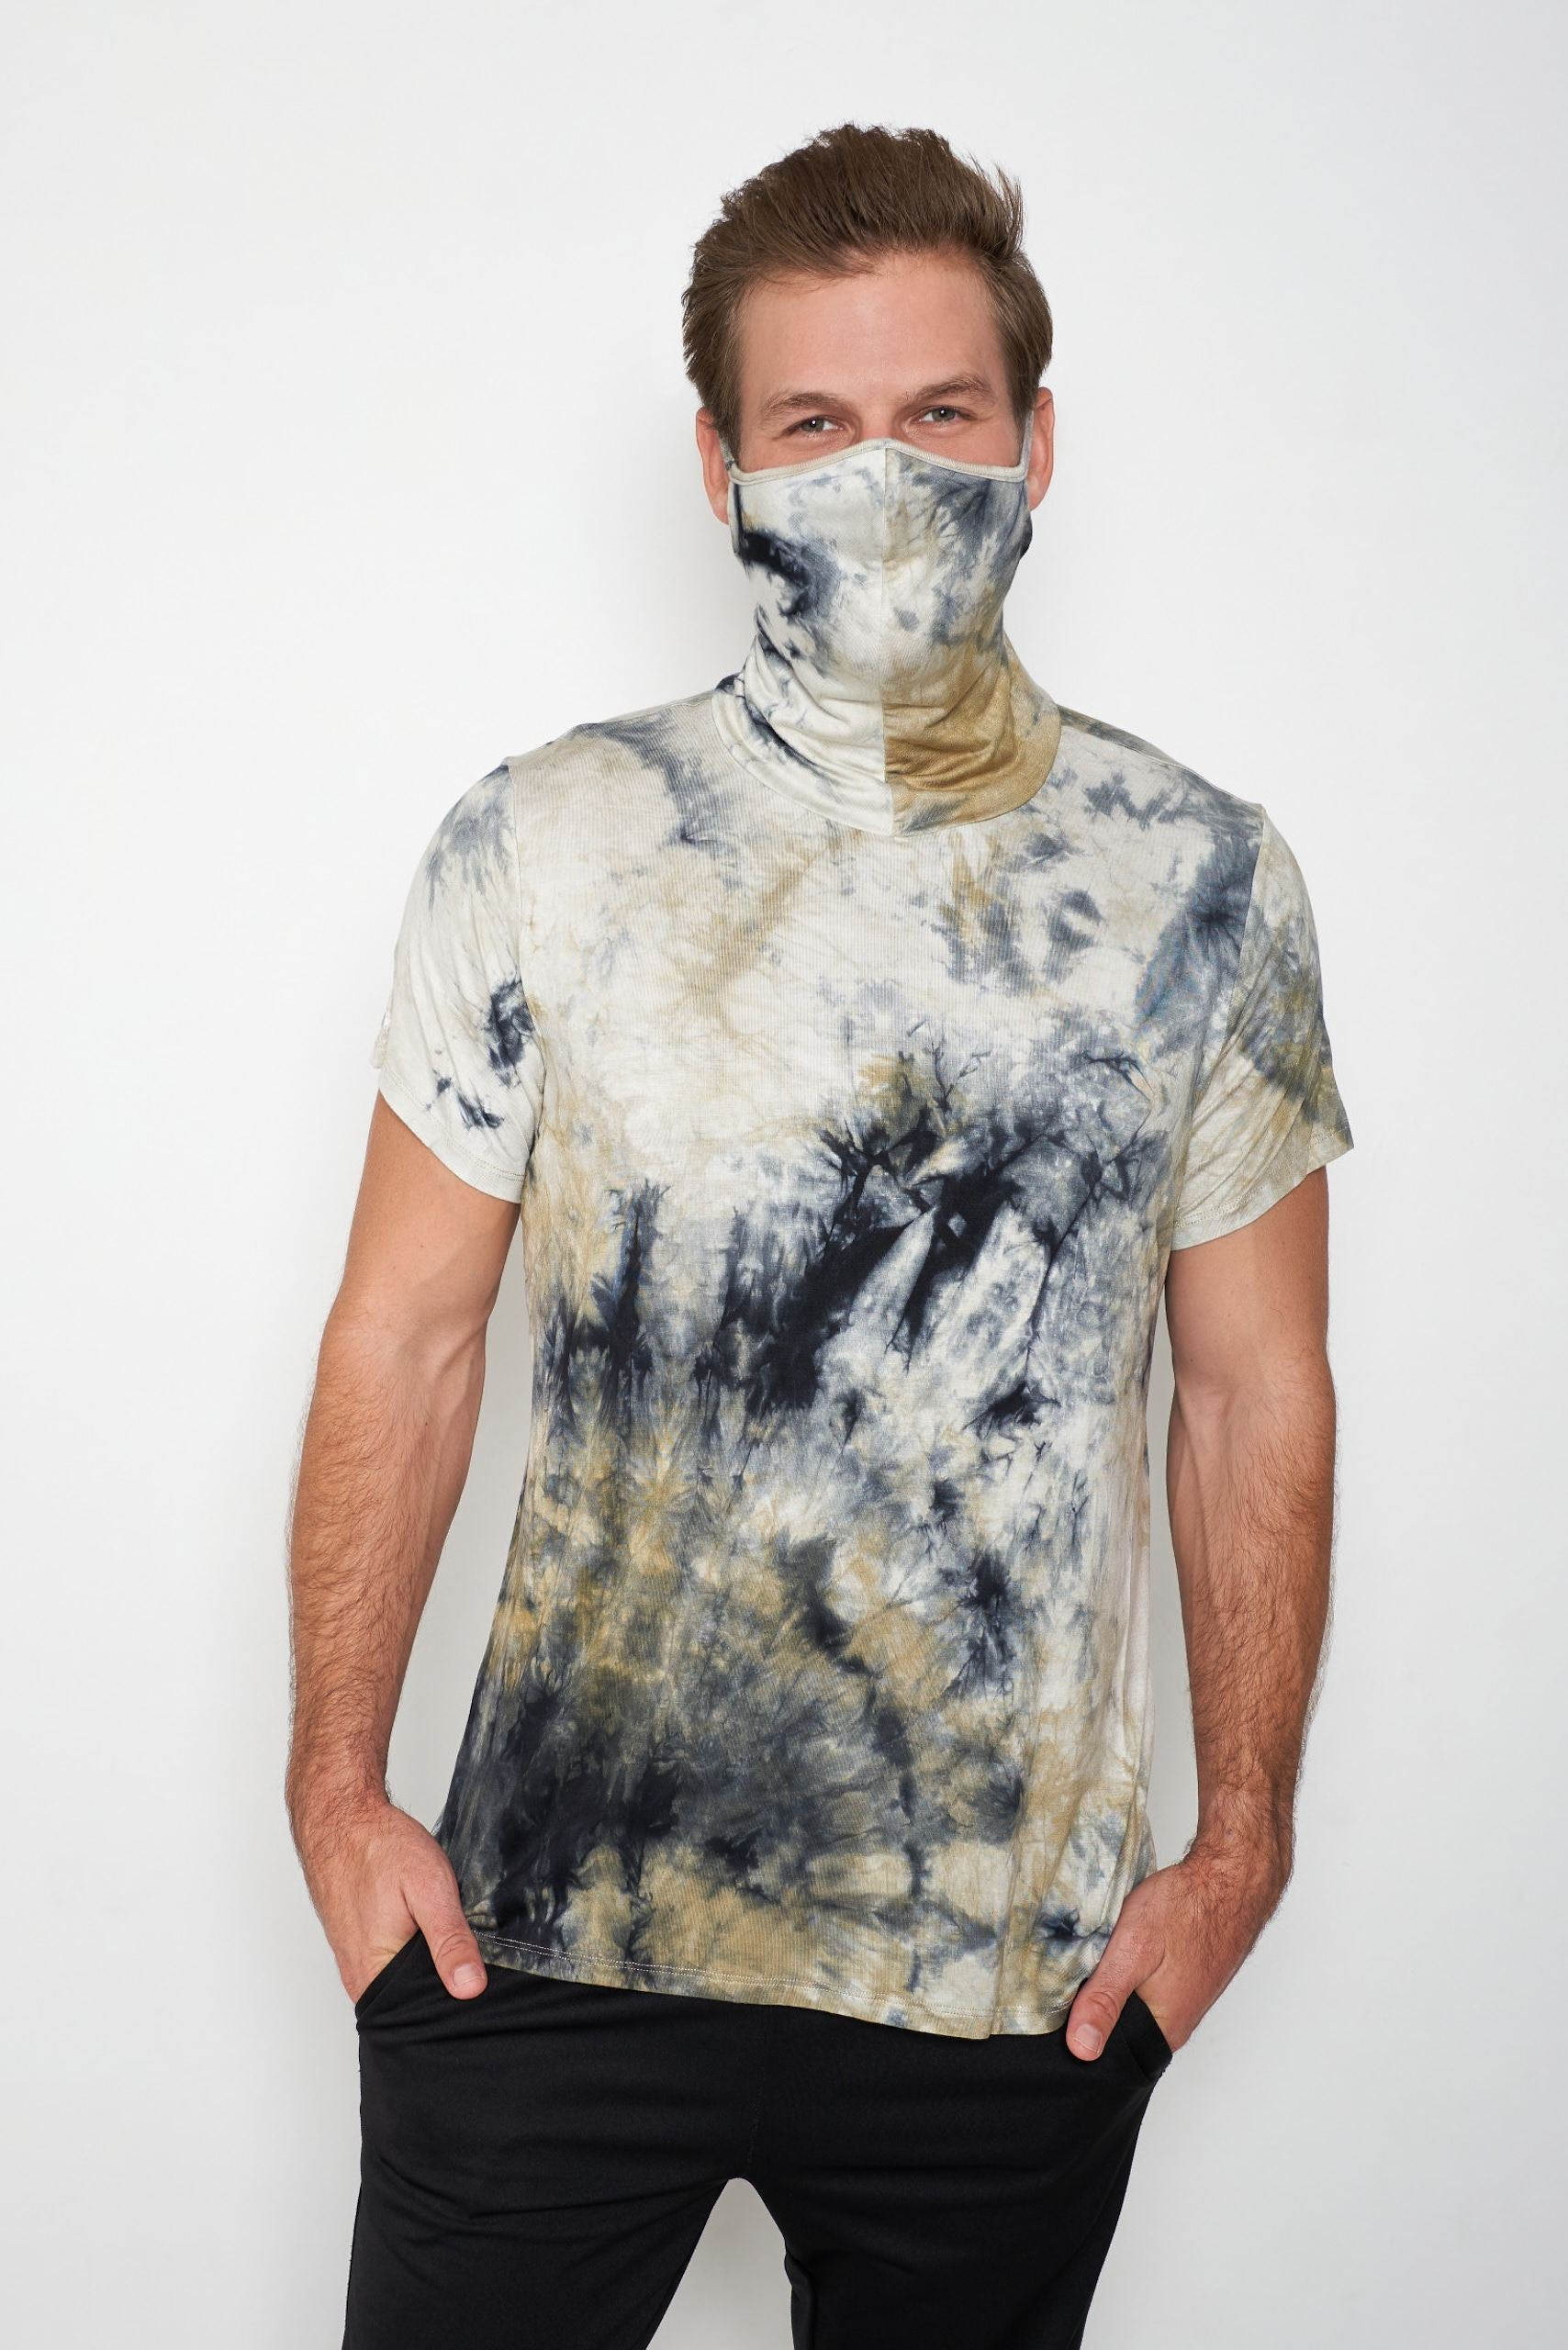 Adult Short Sleeve Green White Gray Blue Tie-dye #26 Shmask™ Earloop Face Mask for Kids and Adults